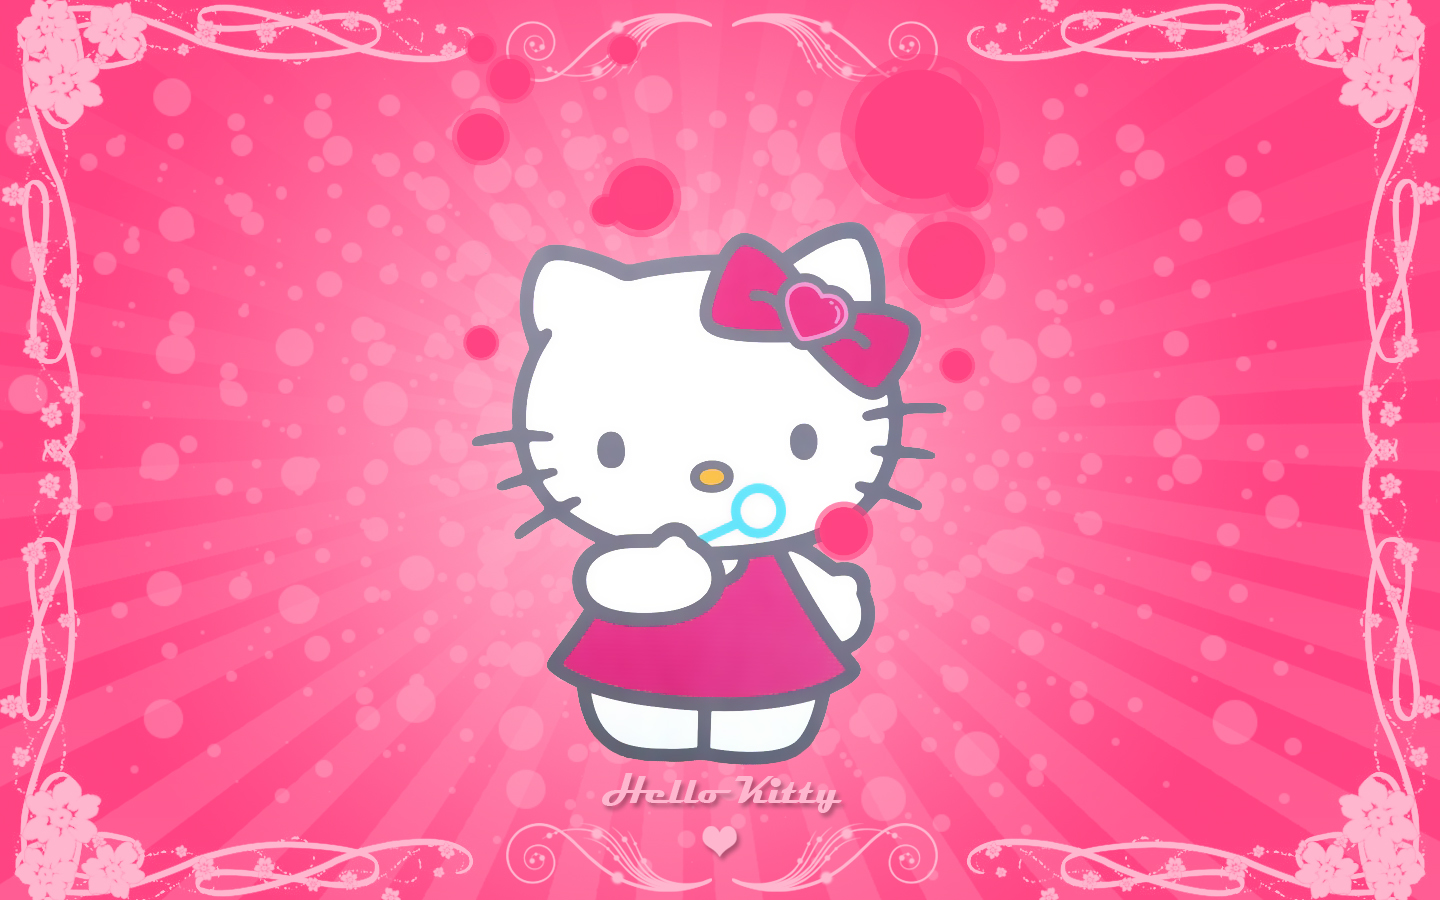 Hello Kitty Cute Pink Background Wallpaper WallpaperLepi 1440x900